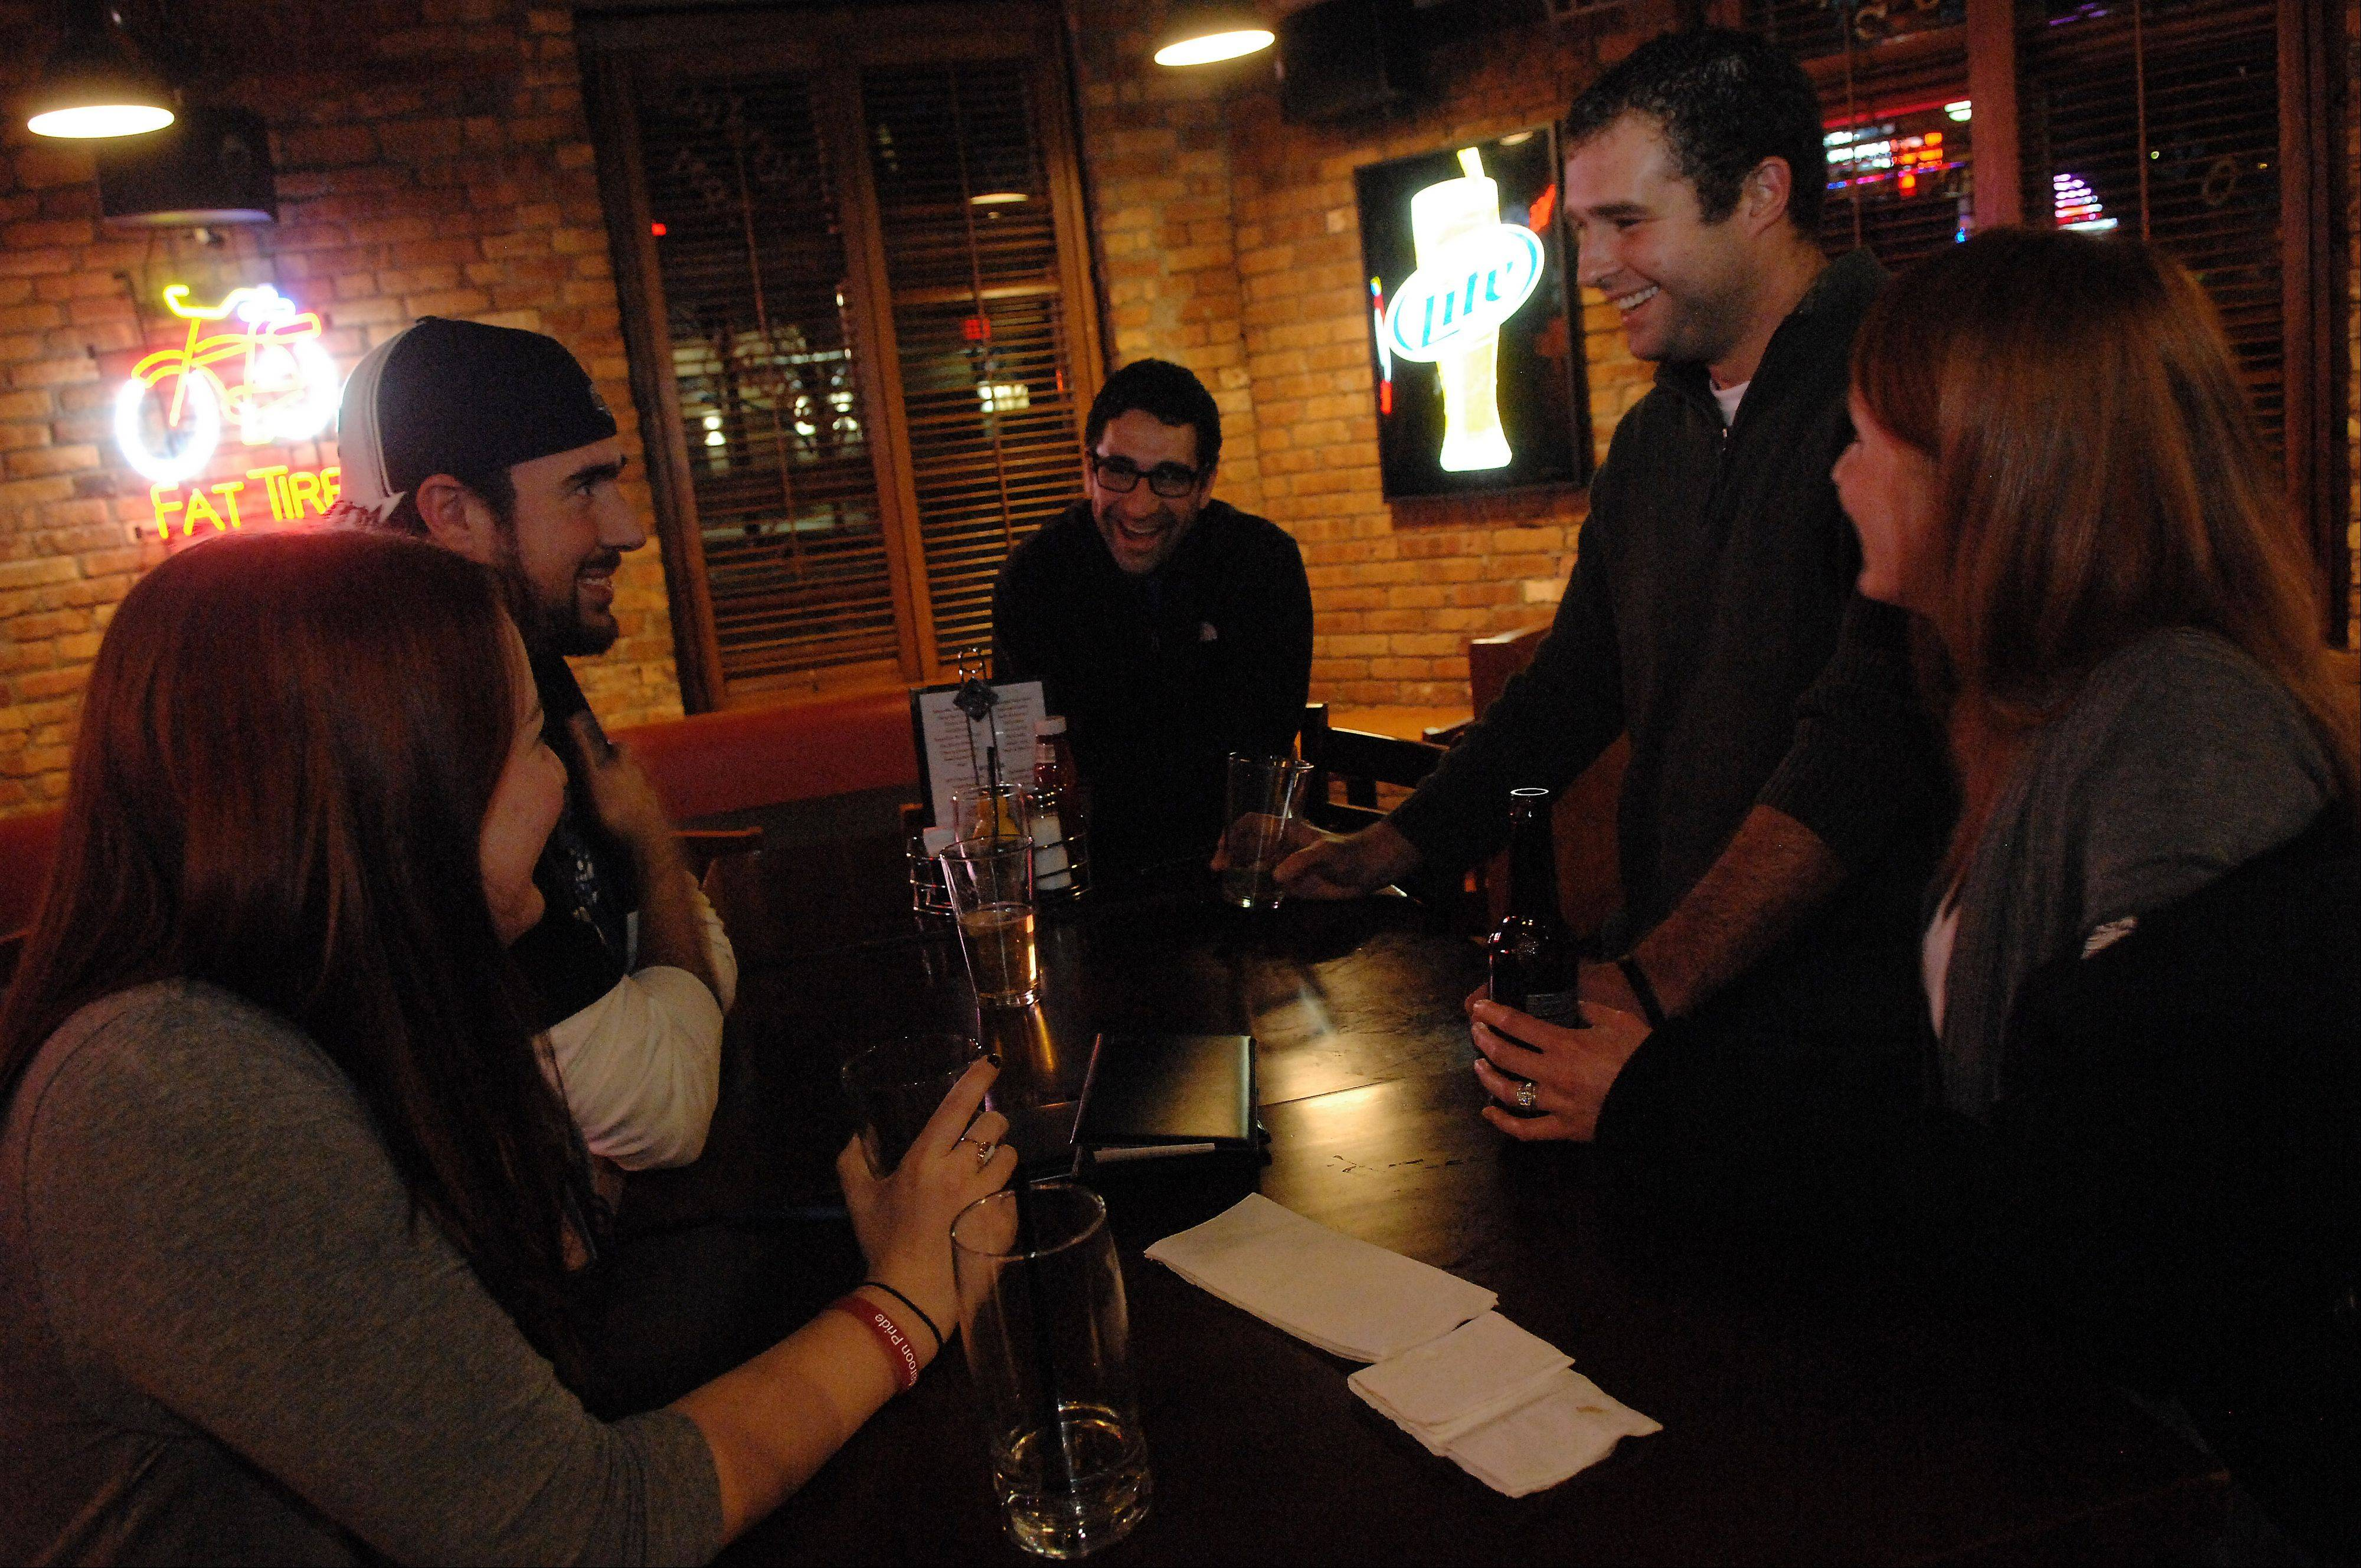 Friends Sally Lennon, left, of Arlington Heights, Dan Barsotti of Palatine, Ruben Flores, and Kyle and Brenna Molik, all of Elgin, enjoy some drinks at Prairie Rock Bar & Grill in Elgin.